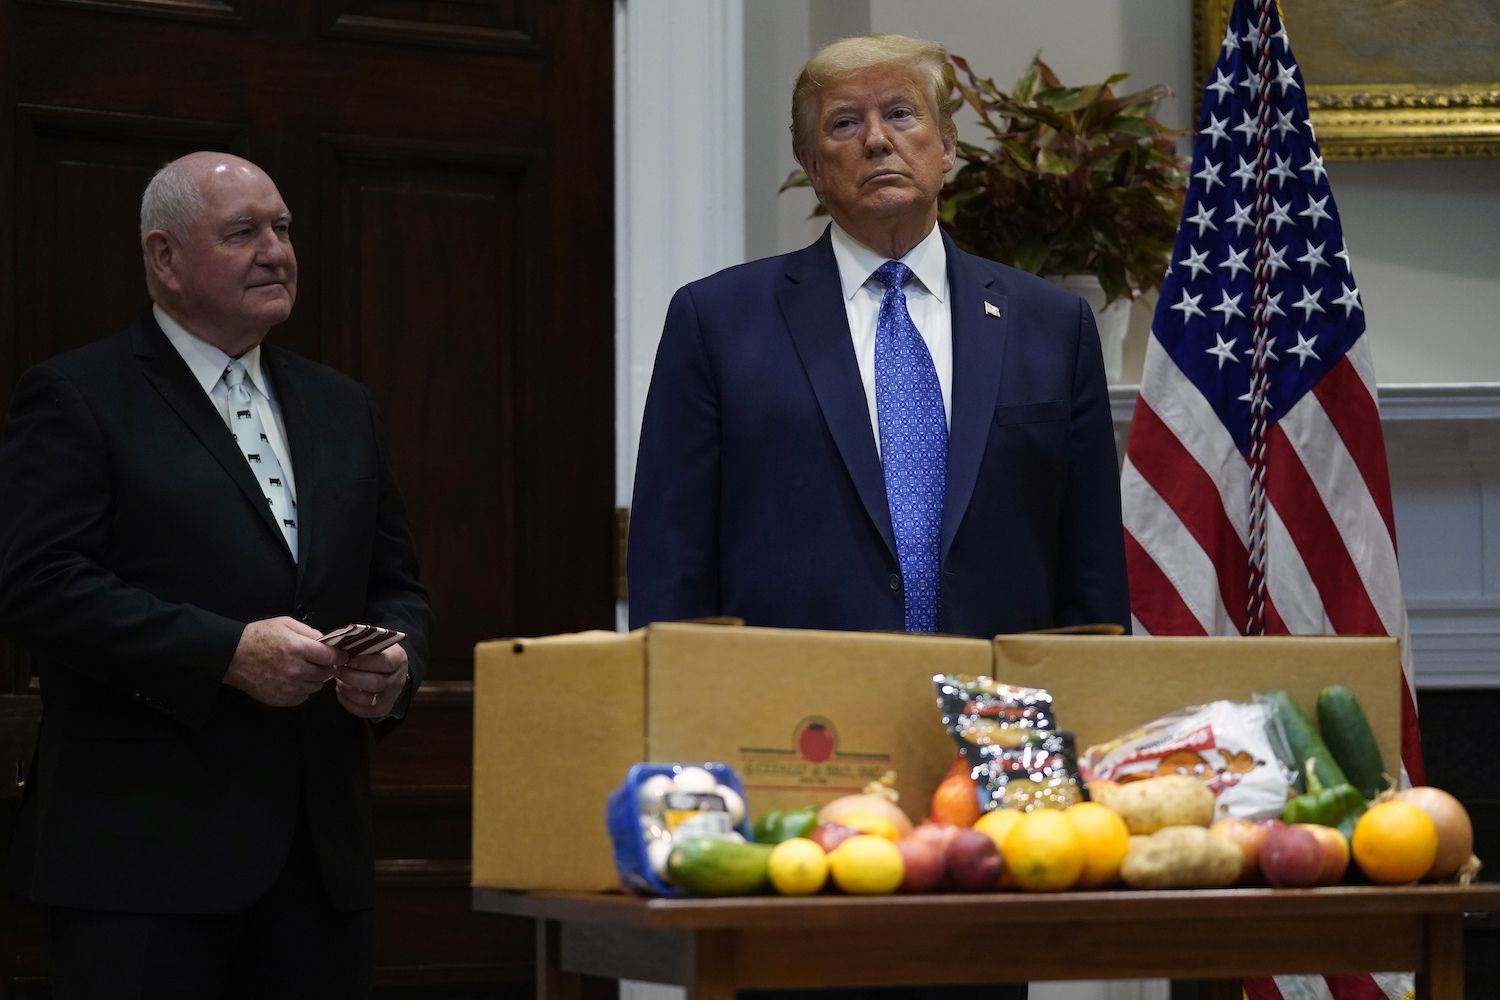 Agriculture Secretary Sonny Perdue and President Donald Trump attend an event on the food supply chain during the coronavirus pandemic, in the Roosevelt Room of the White House, Tuesday, May 19, 2020, in Washington.